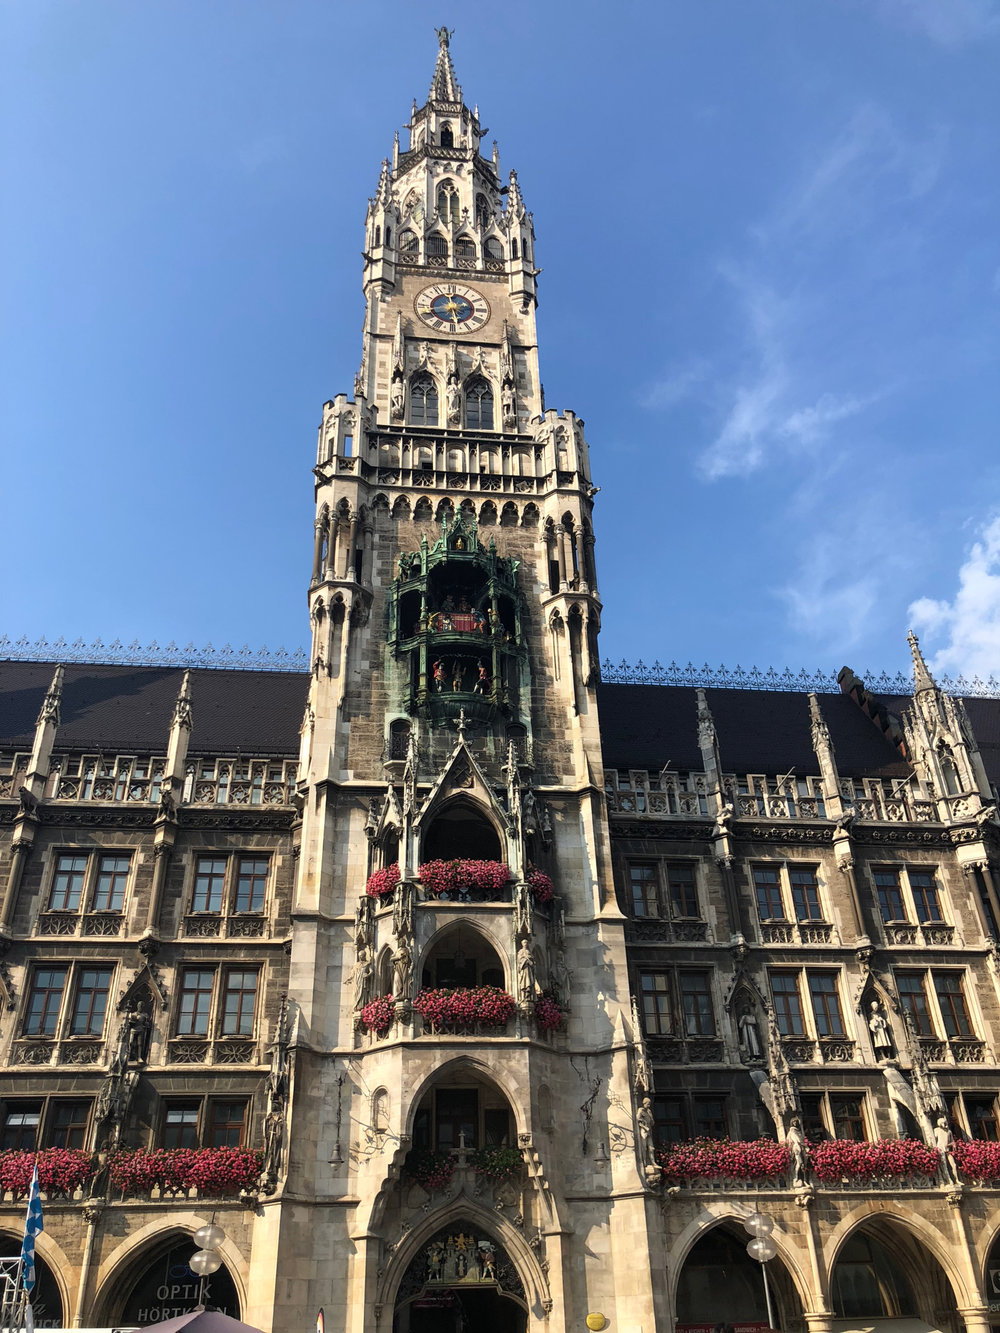 Old Munich Rathaus (City Hall)